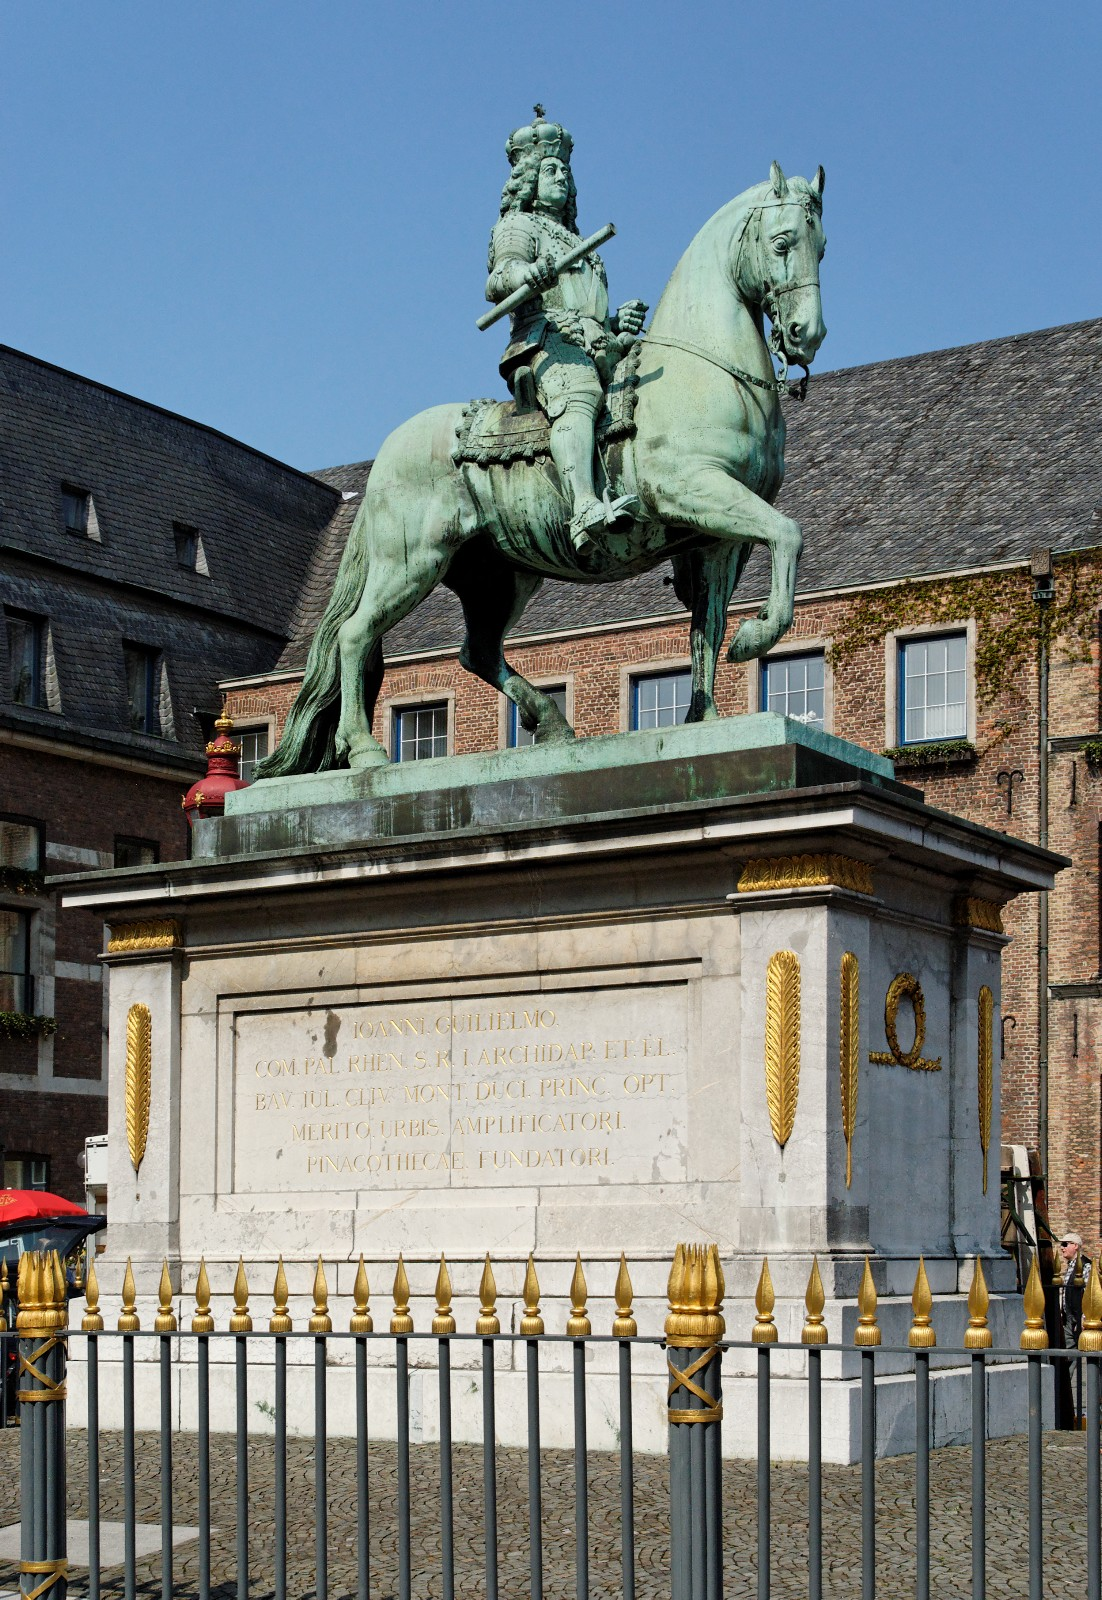 1711, Bronze, Marktplatz in Düsseldorf-Altstadt, Entwurf von Gabriel Grupello.<br>